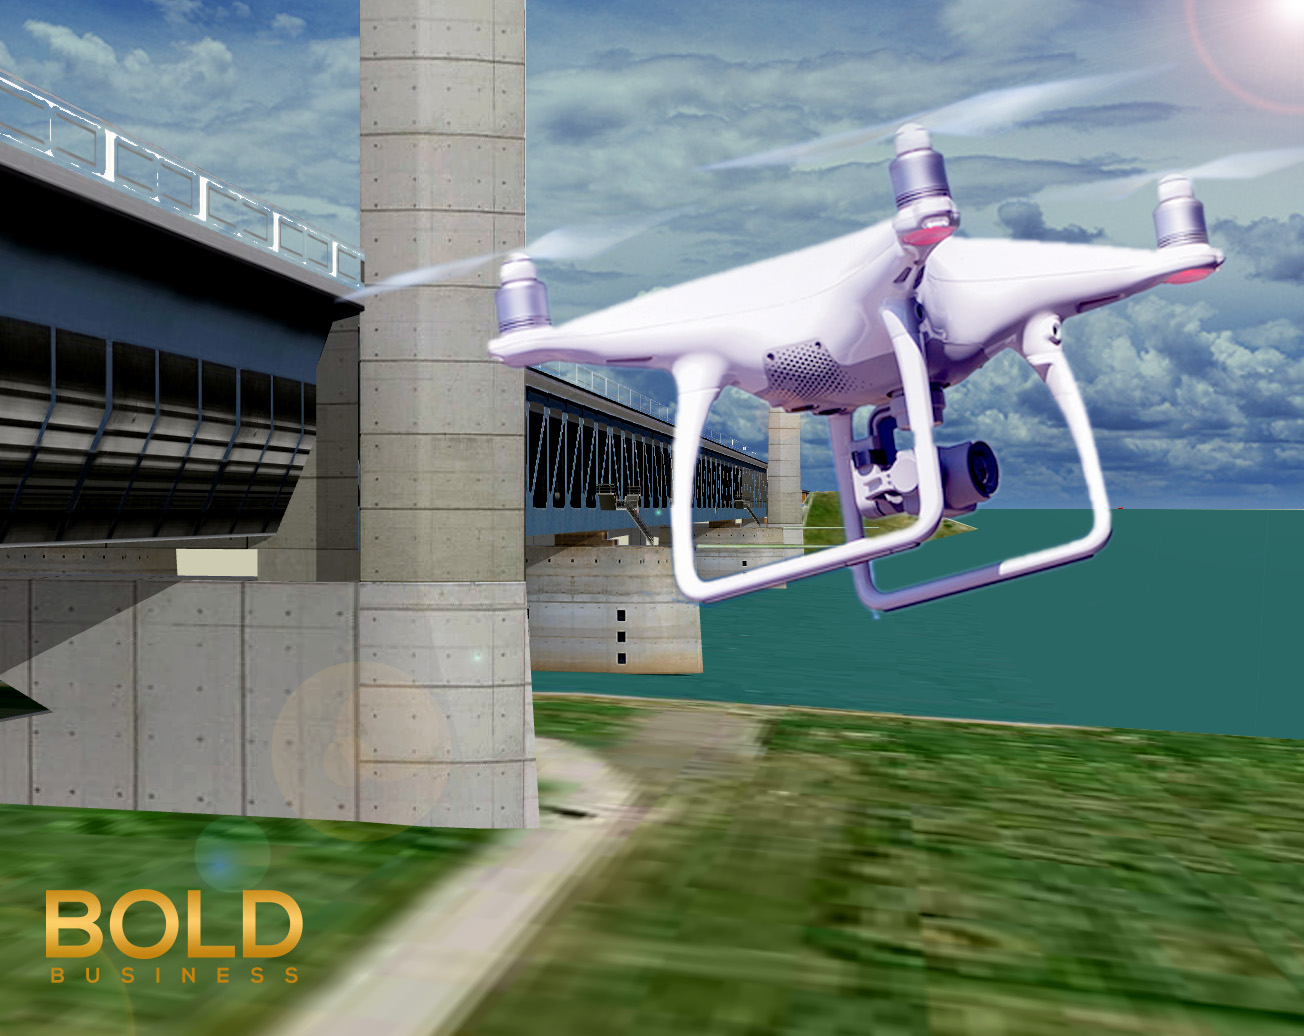 Railway Infrastructure Monitoring by Drones on Train Bridges to Improve safety